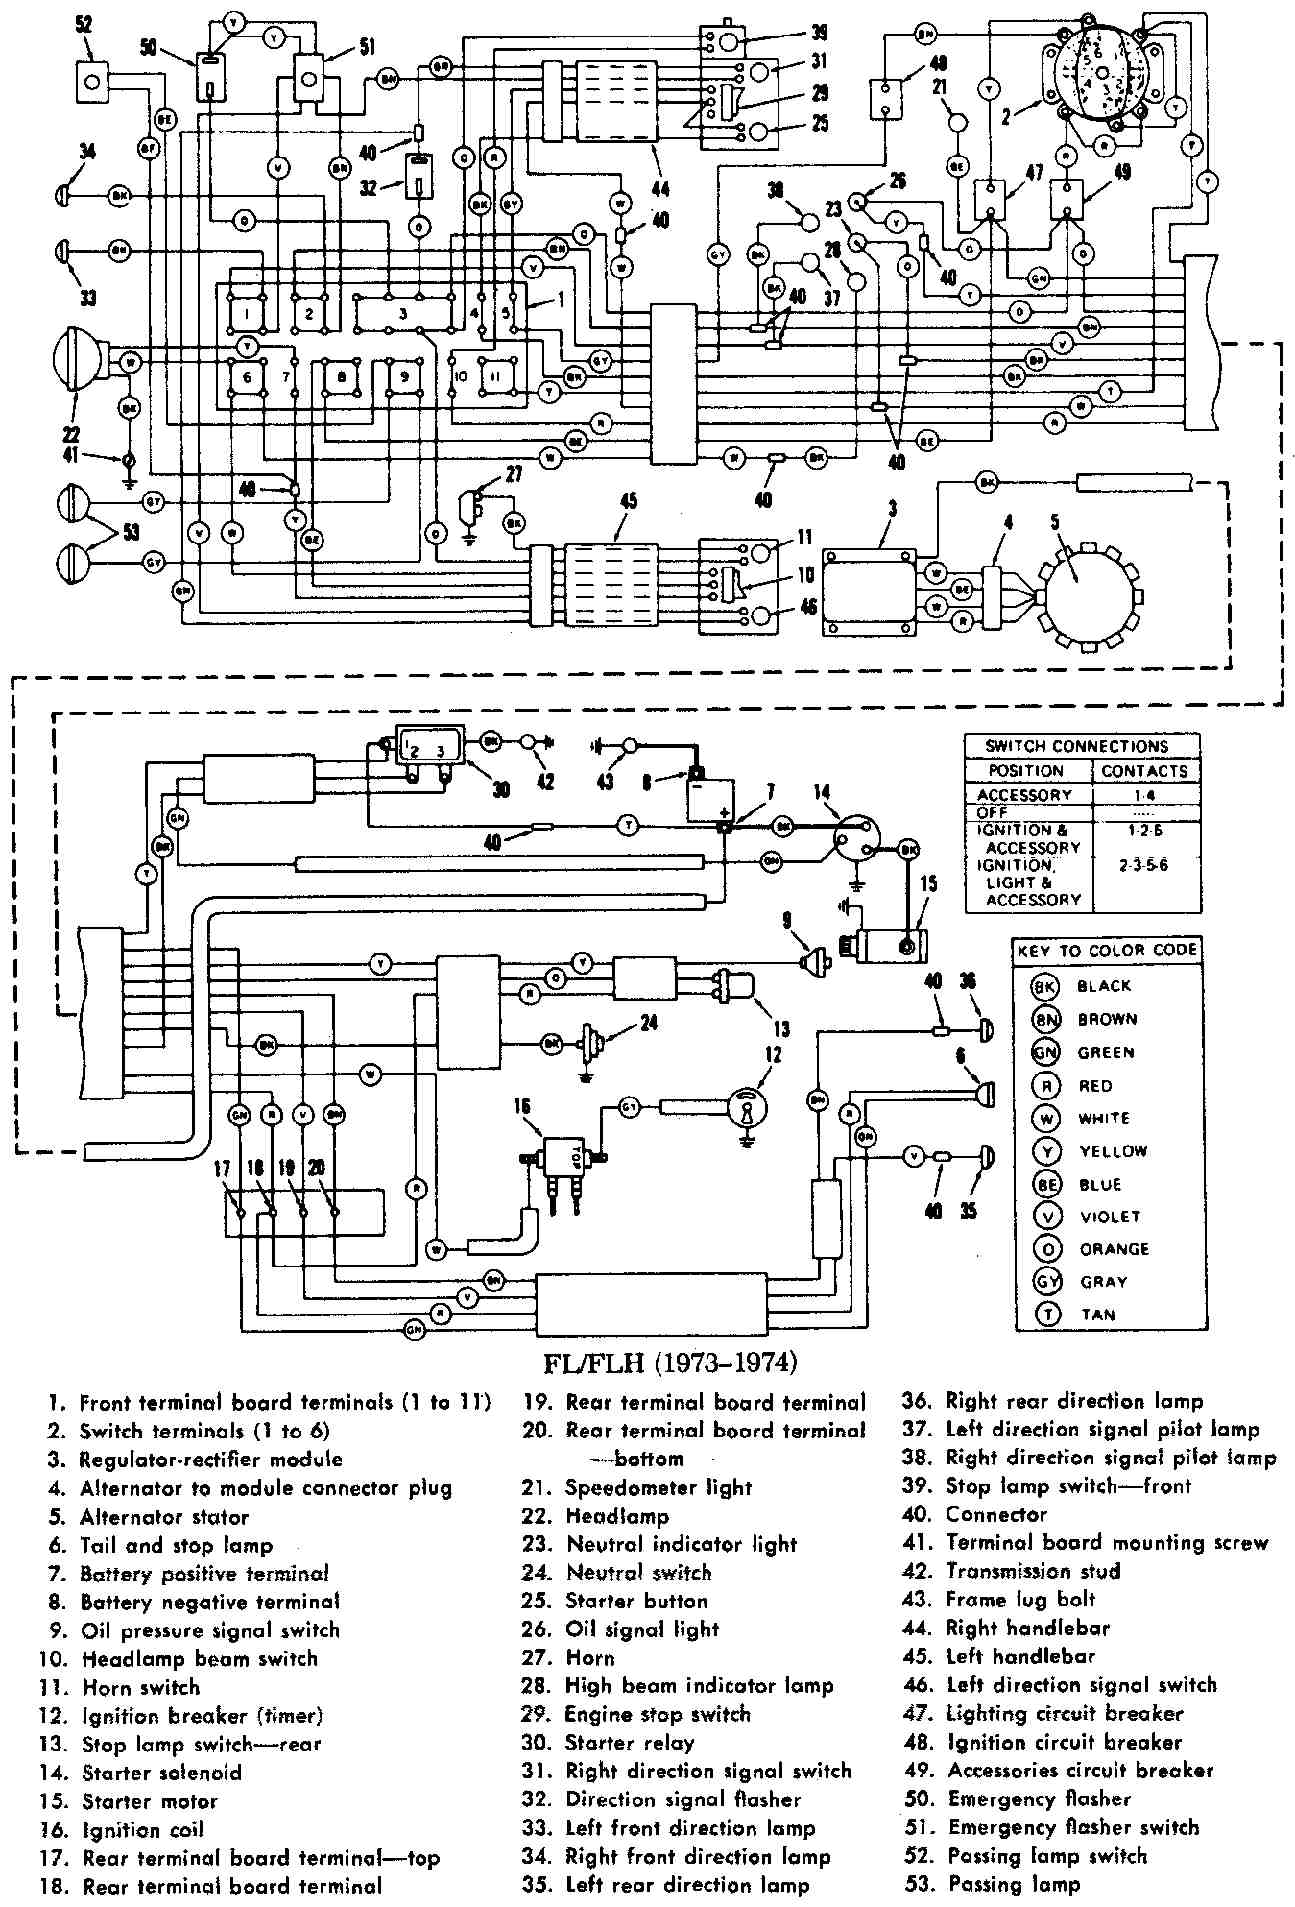 msd ballast wiring diagram with 1968 Amc Amx Starter Wiring Diagram on Msd 6420 Wiring Schematics as well Duraspark Module Overheated Engine Died 225477 likewise V8 Distributor Wiring Diagram moreover How Fds Ignition System Works Simplified Wiring Diagram 1994 Rx7 In Coil in addition 48259 Another Tachometer Thread.